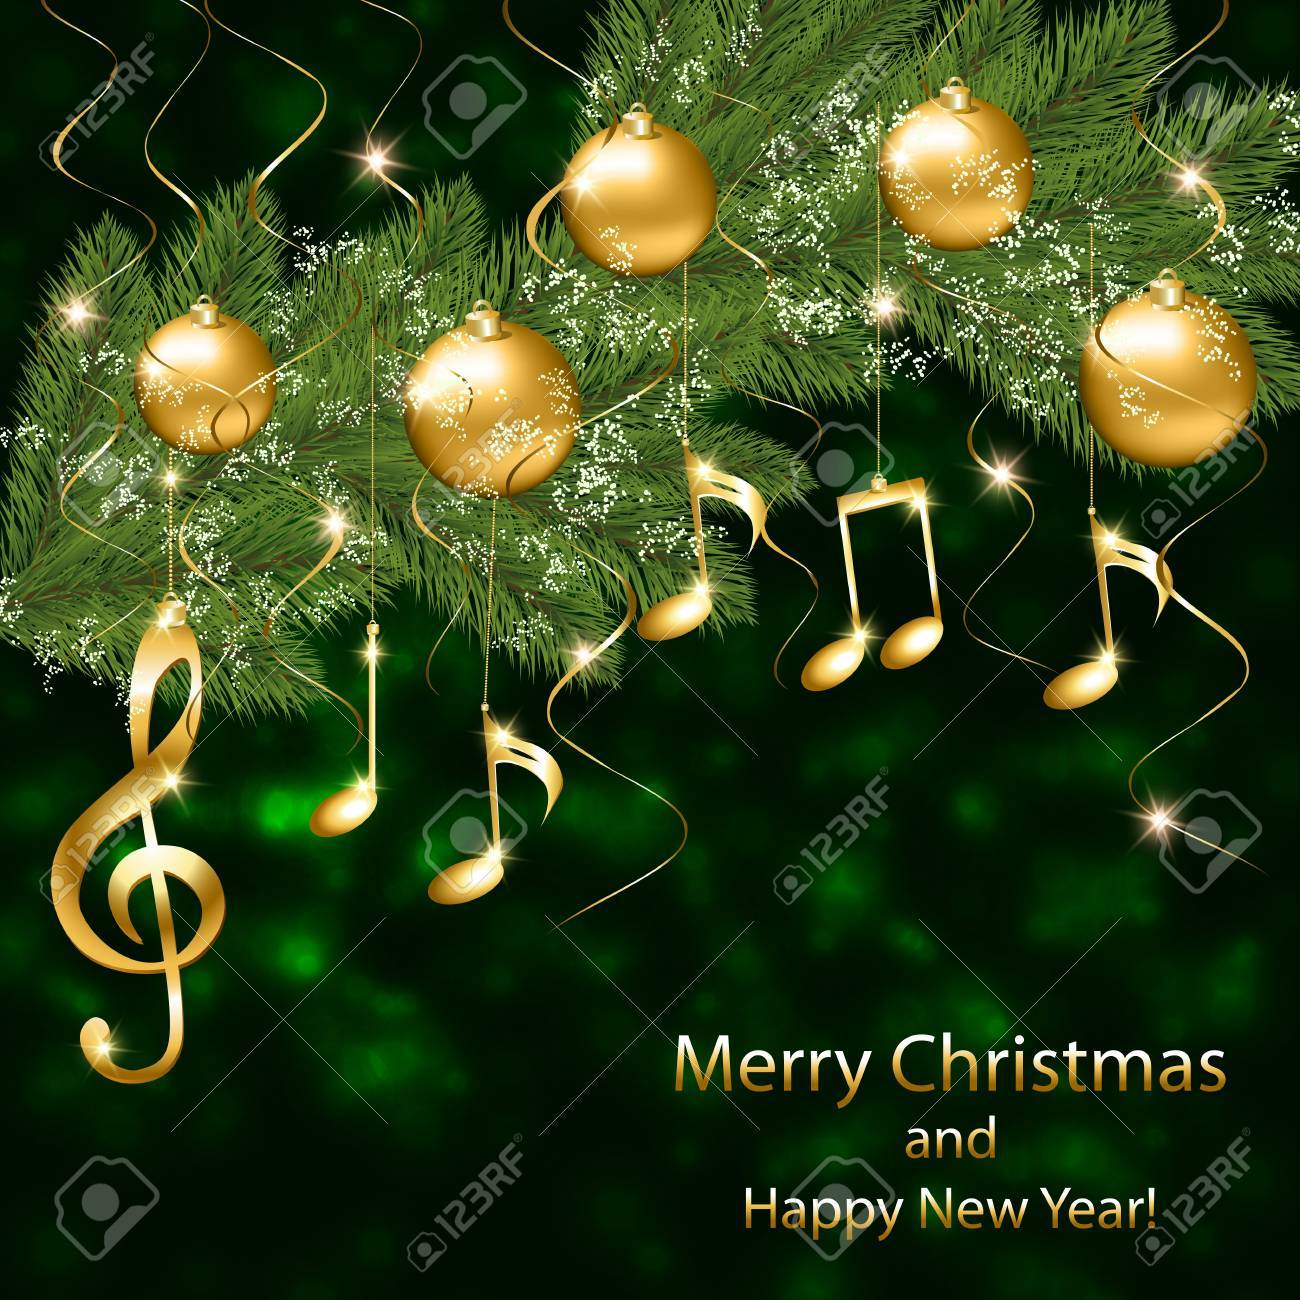 abstract new year background with musical notes and treble clef on a christmas tree branch stock